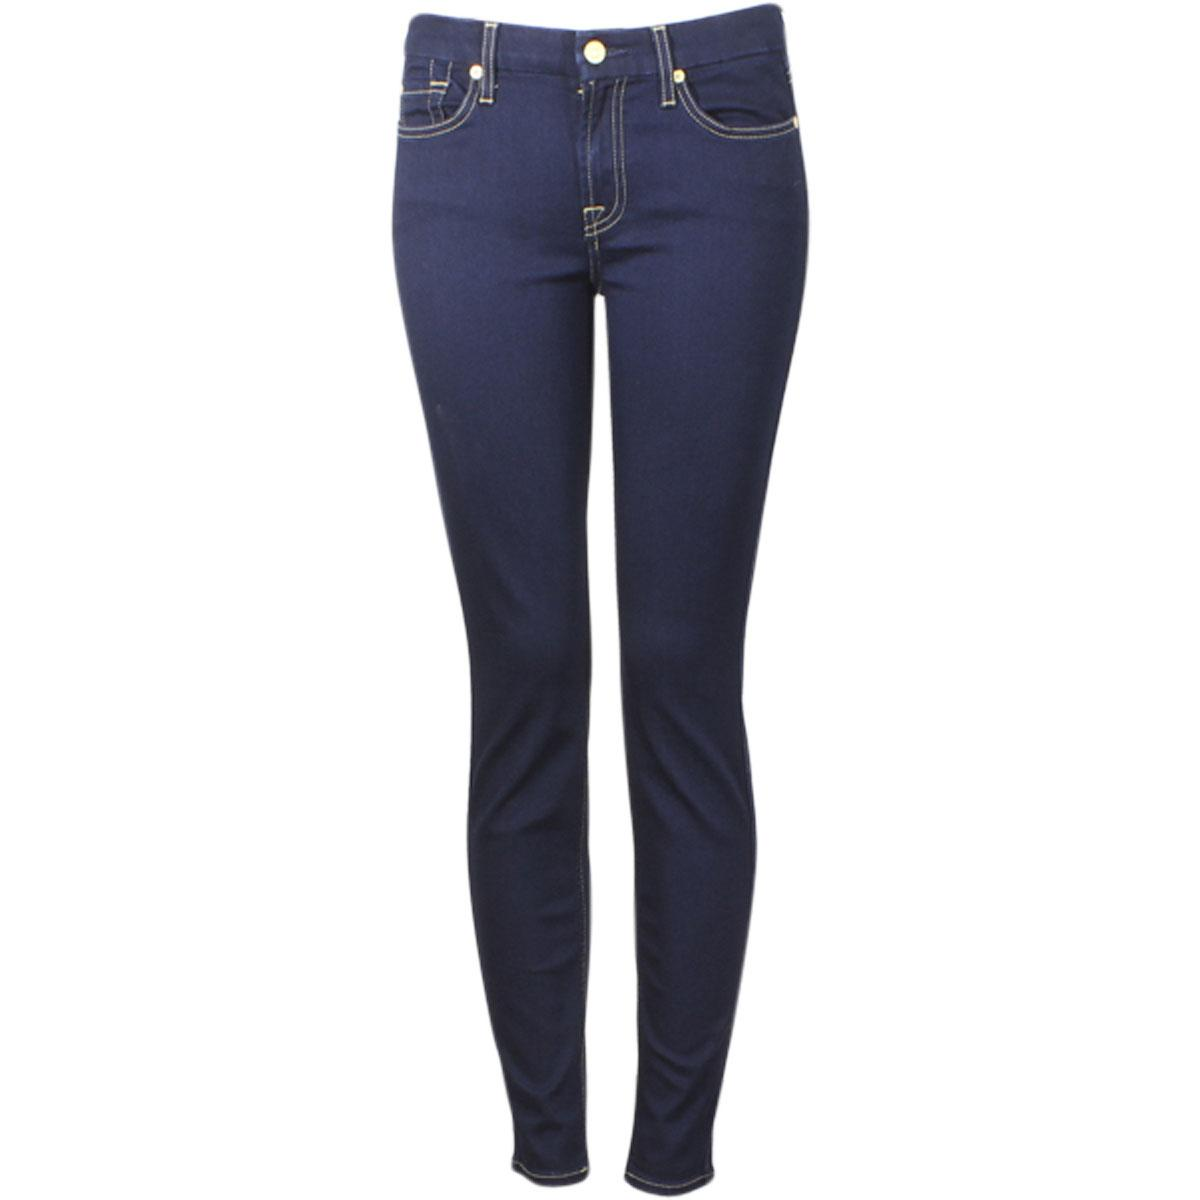 Image of 7 For All Mankind Women's (B)Air Denim The Skinny Jeans - Blue - 28 (5/6)